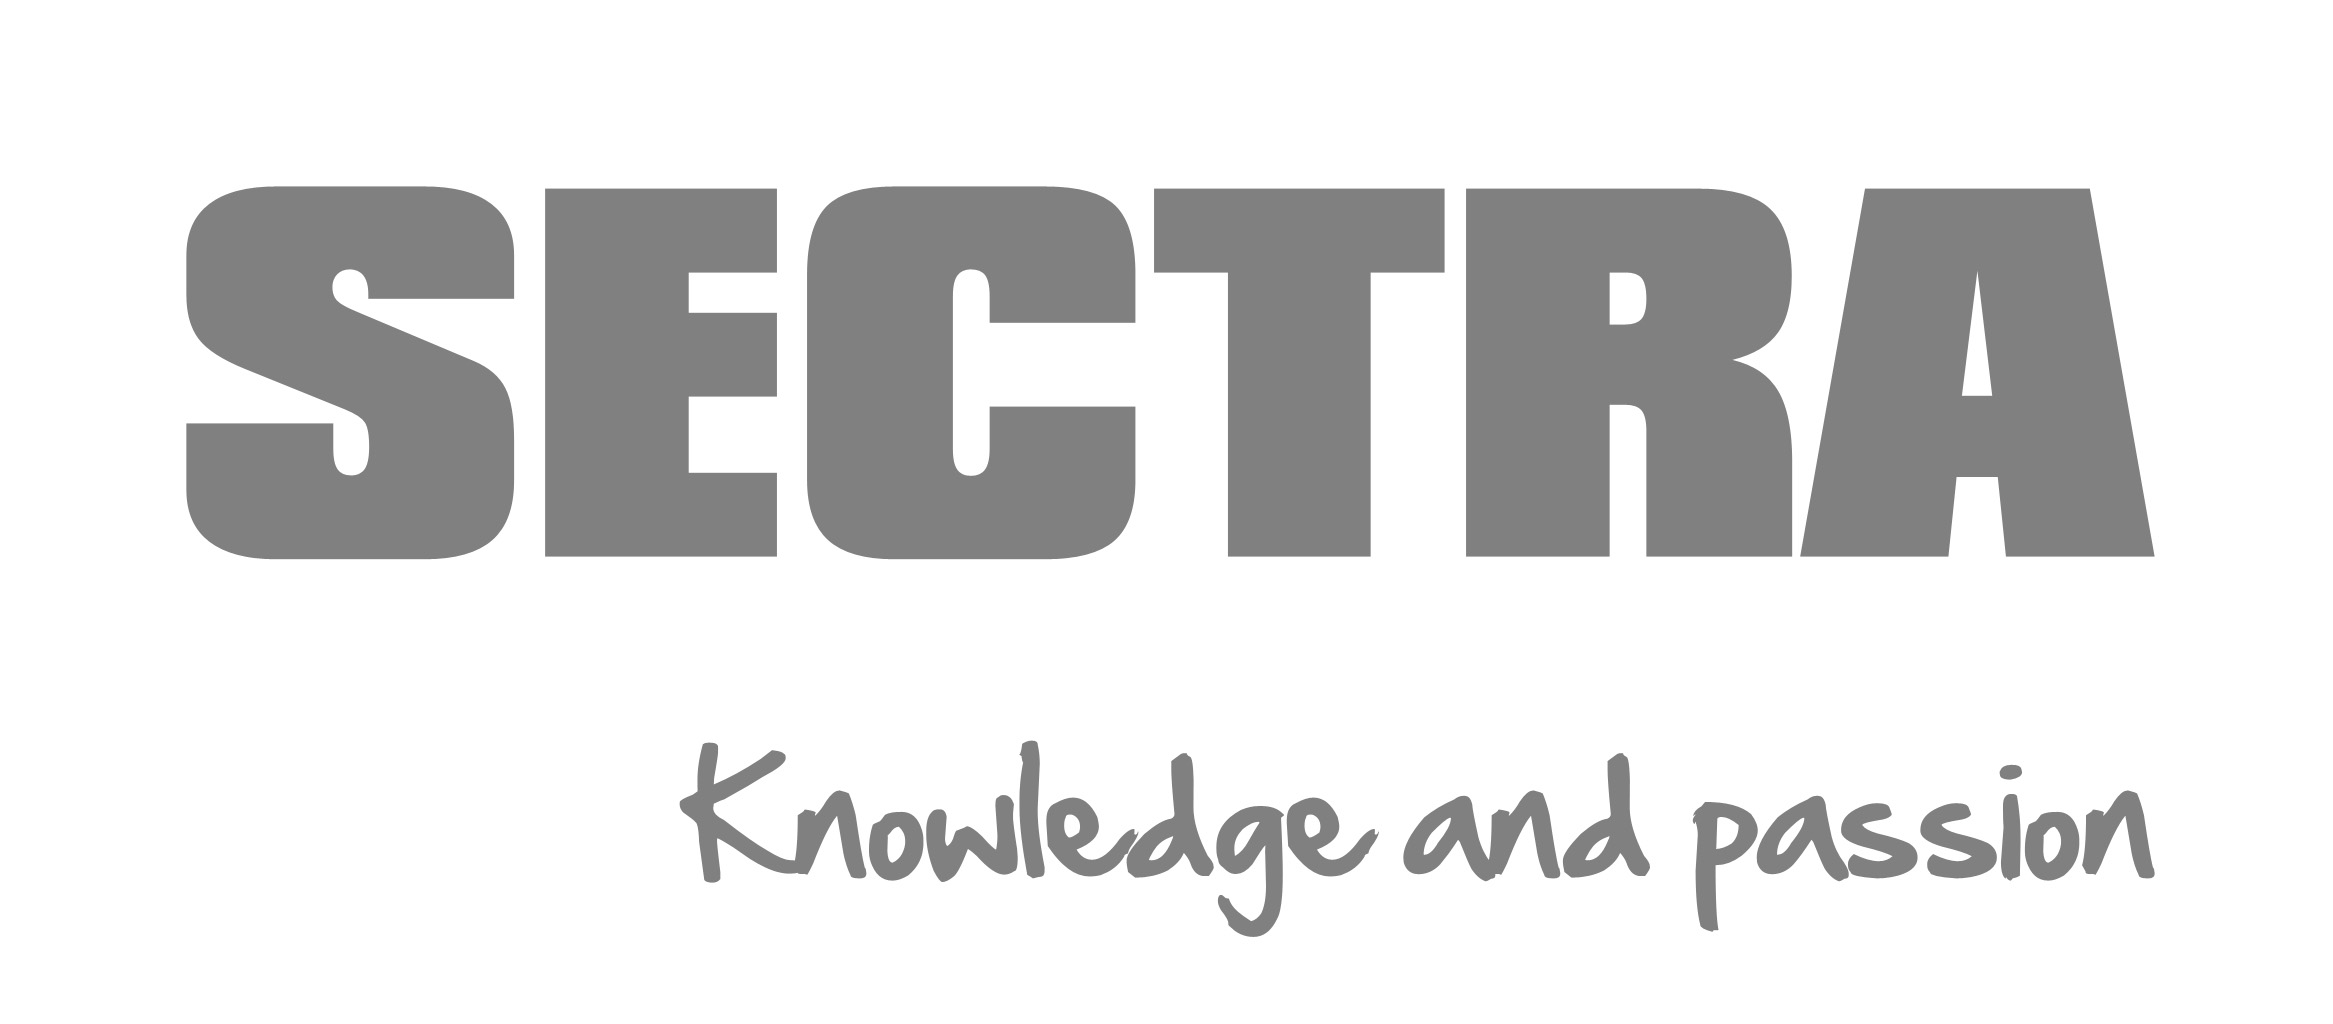 Sectra-logo-Knowledge-and-passion-vector@file116.jpg